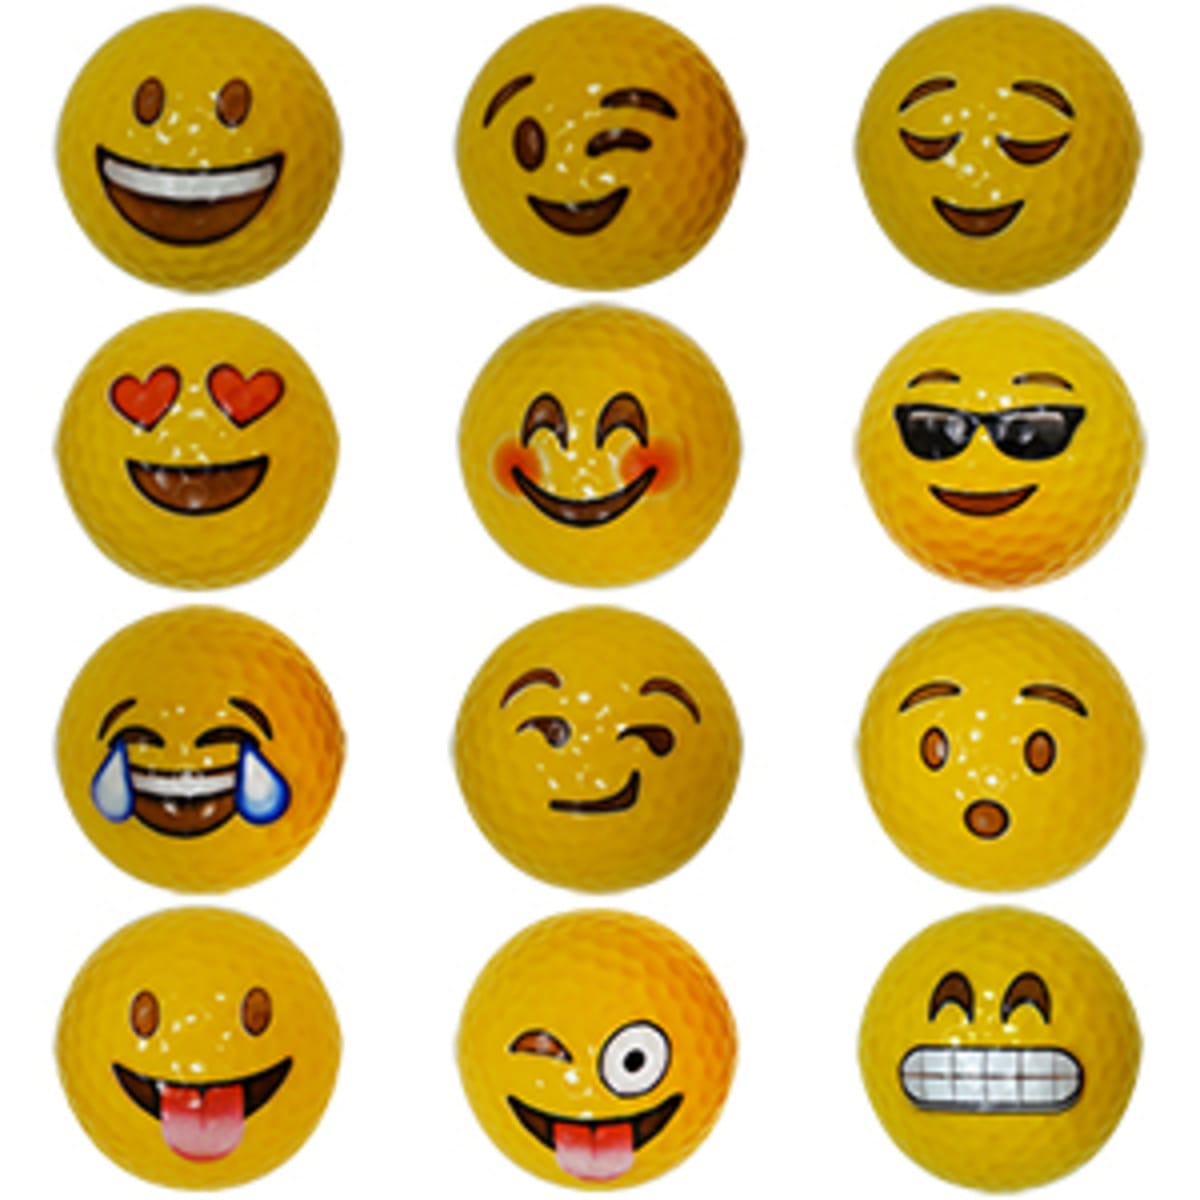 Emoji novelty golf balls - assorted